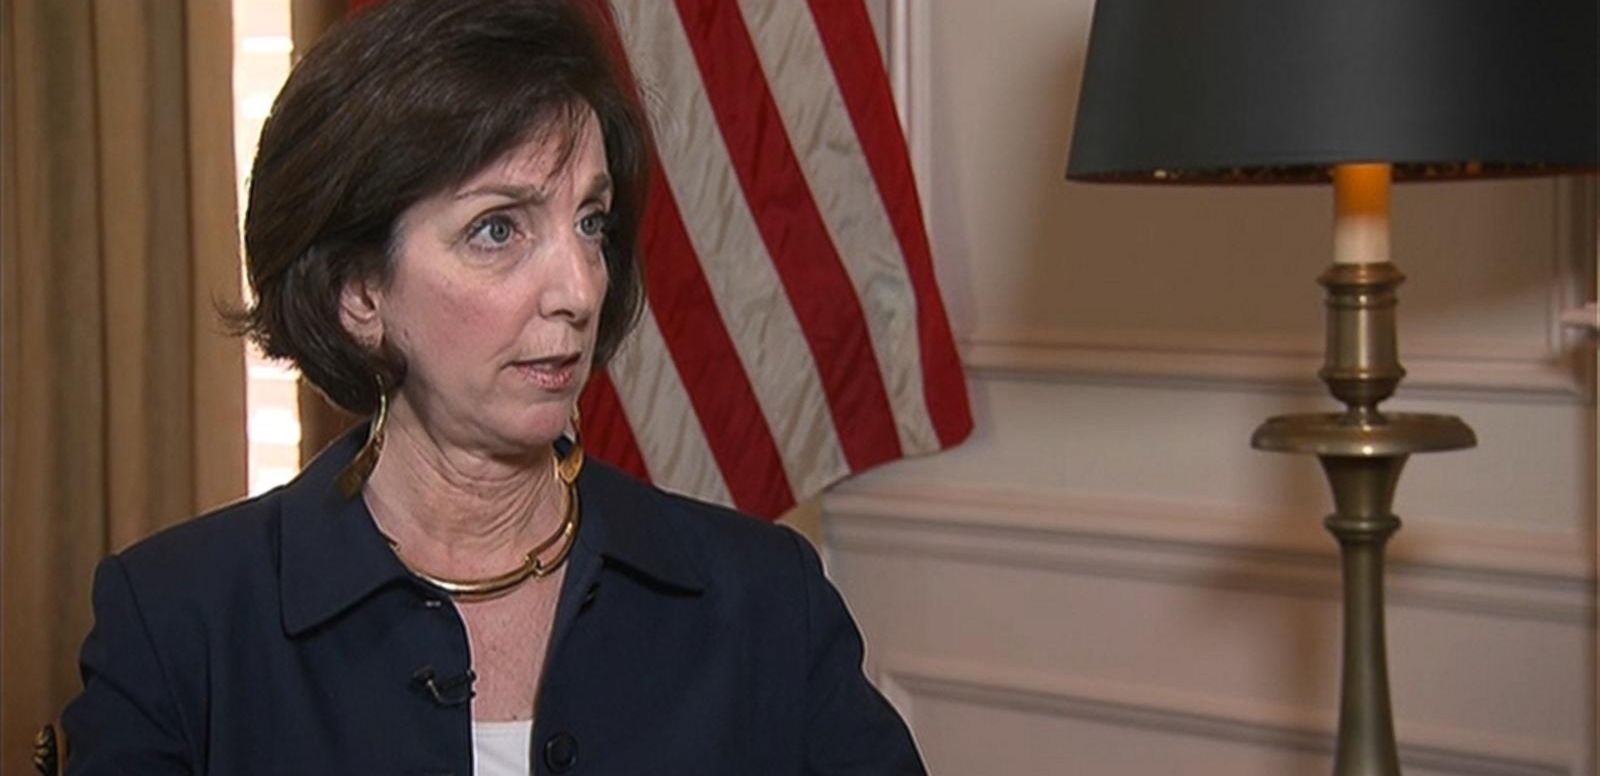 VIDEO: 4 Questions for Roberta Jacobson, The Lead US Negotiator in Cuba